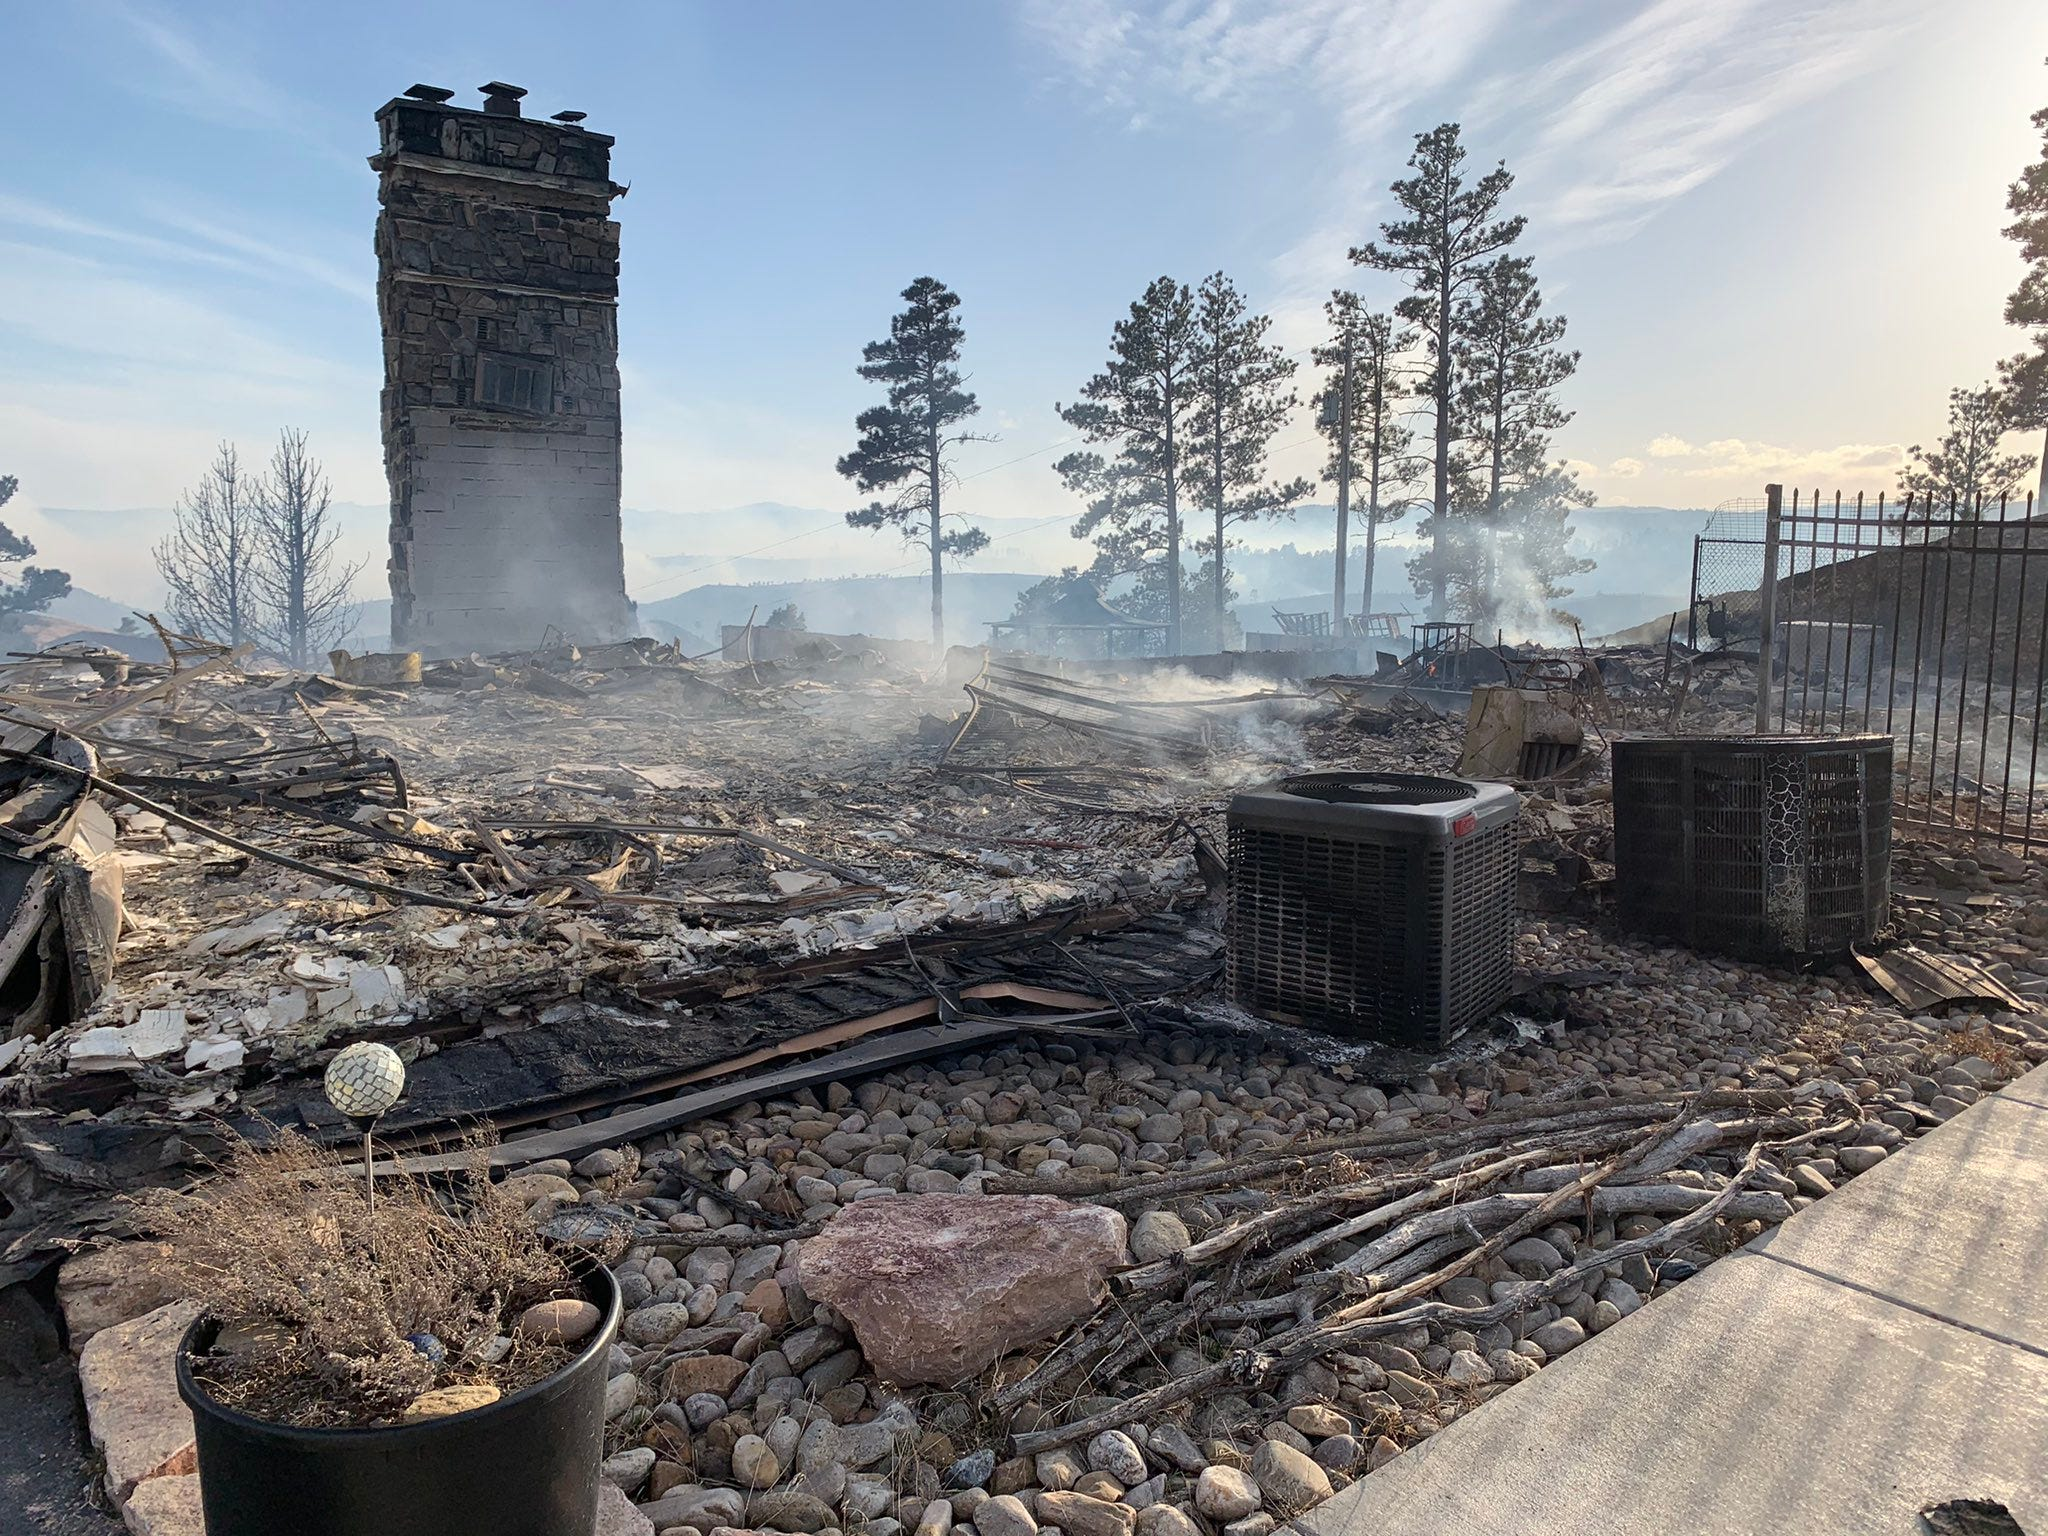 'Watched a neighbor's house go up in flames': High wind gusts fuel South Dakota fires; Mount Rushmore remains closed